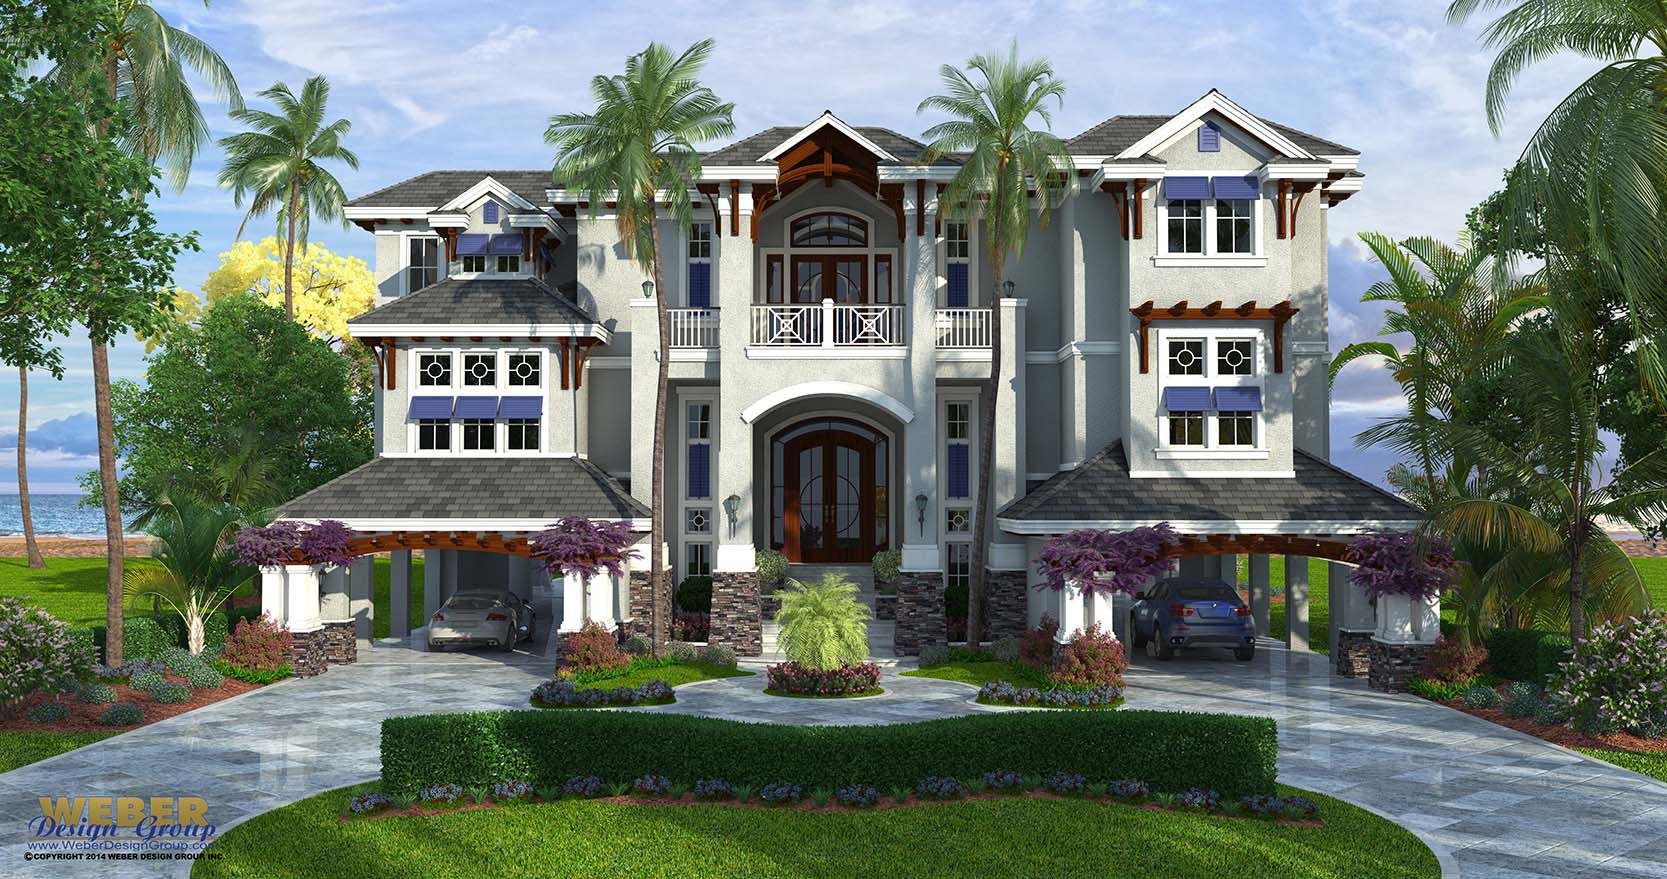 Coastal style house plan 3 story floor plan outdoor for 3 story home plans